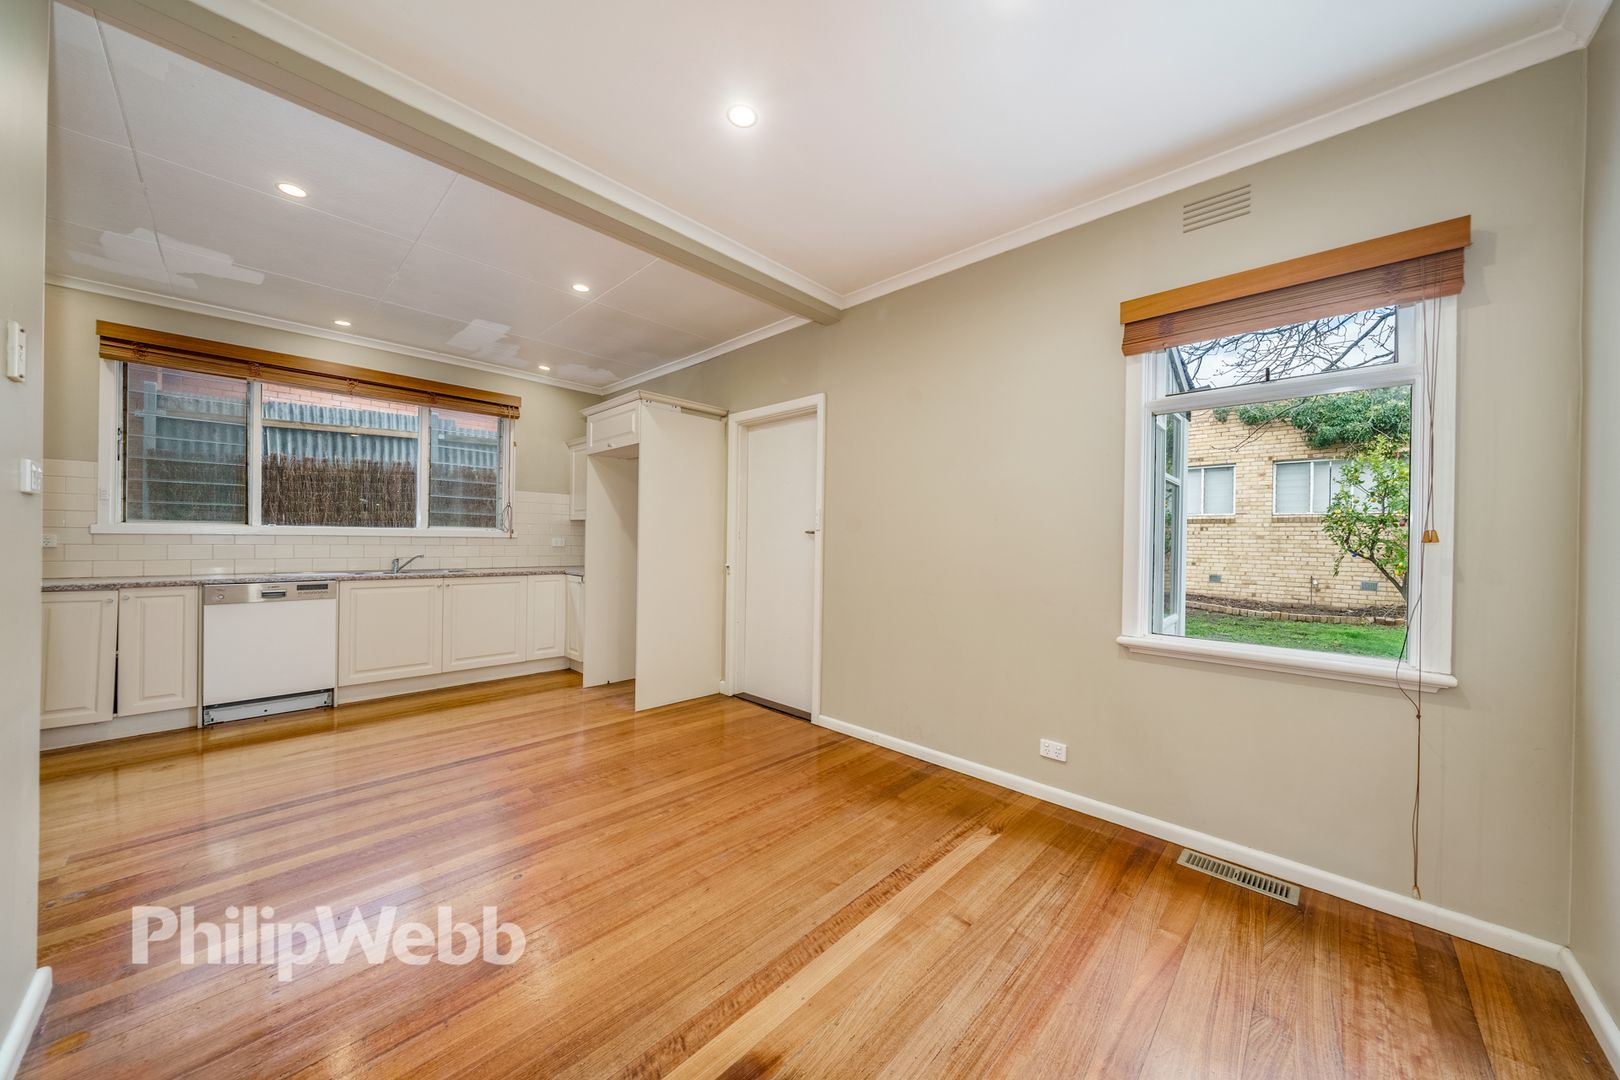 23 Cameron Road, Box Hill North VIC 3129, Image 2